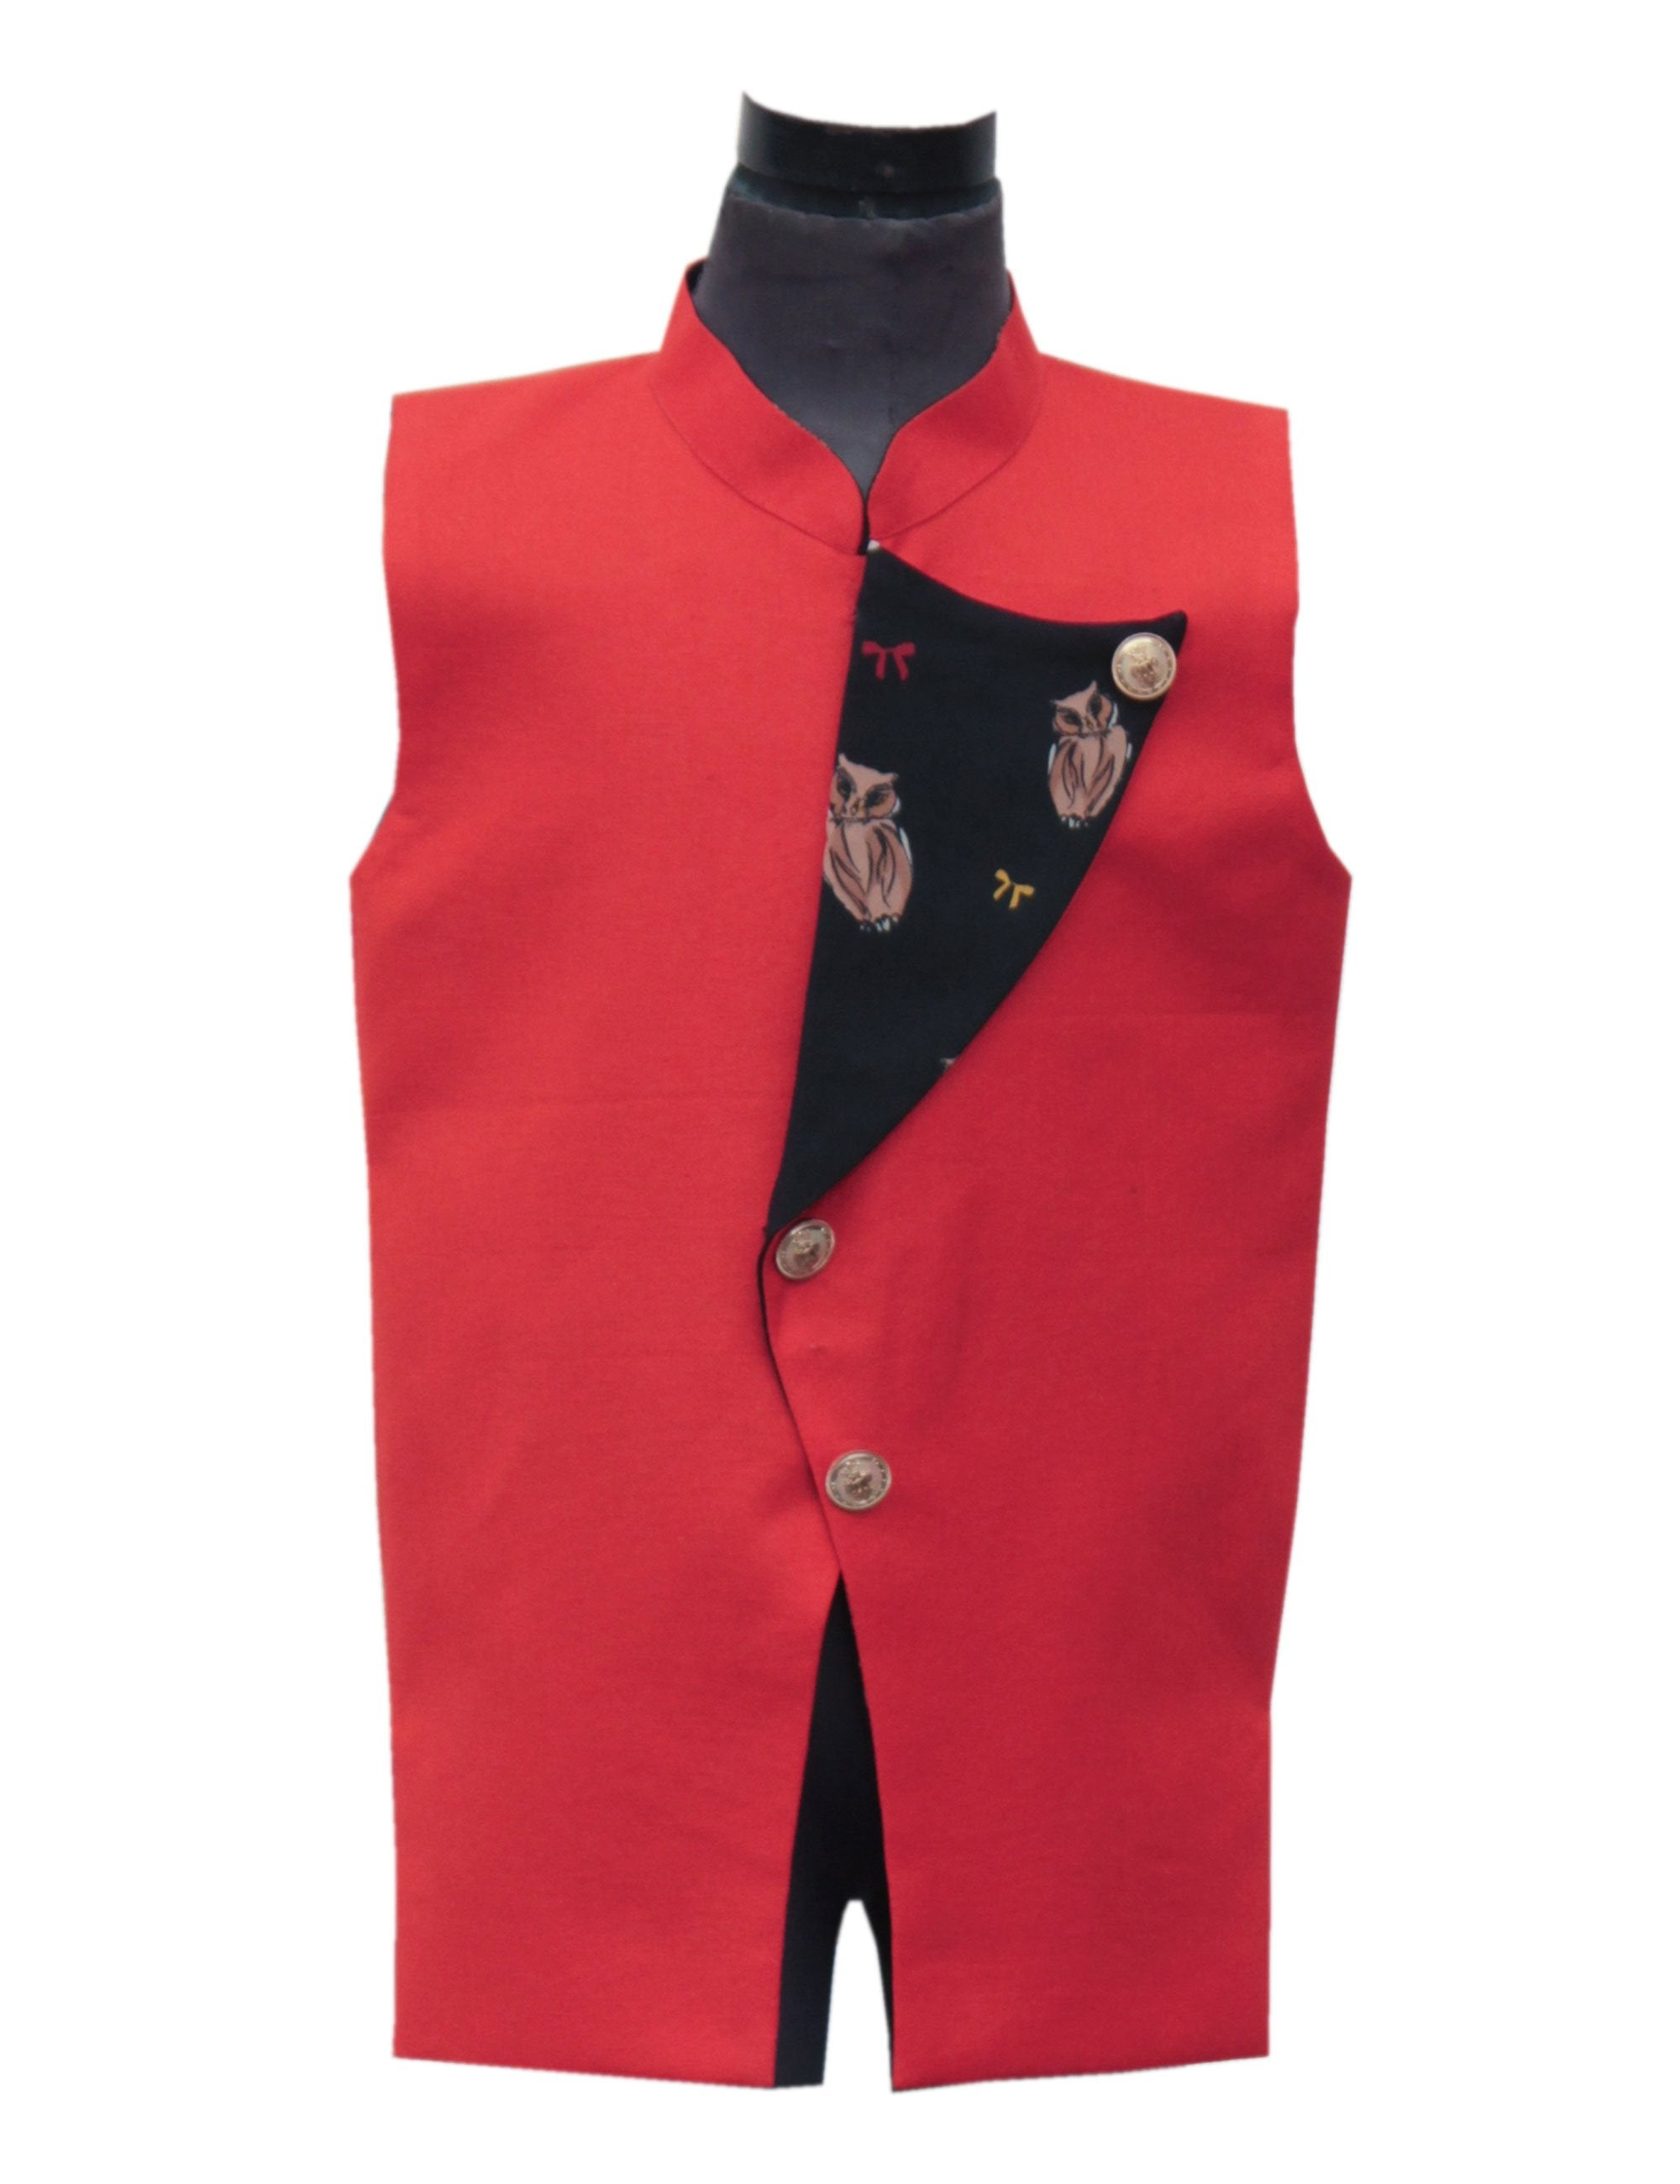 Nehru Jacket with Printed Flip Over in Red Colour for Boys